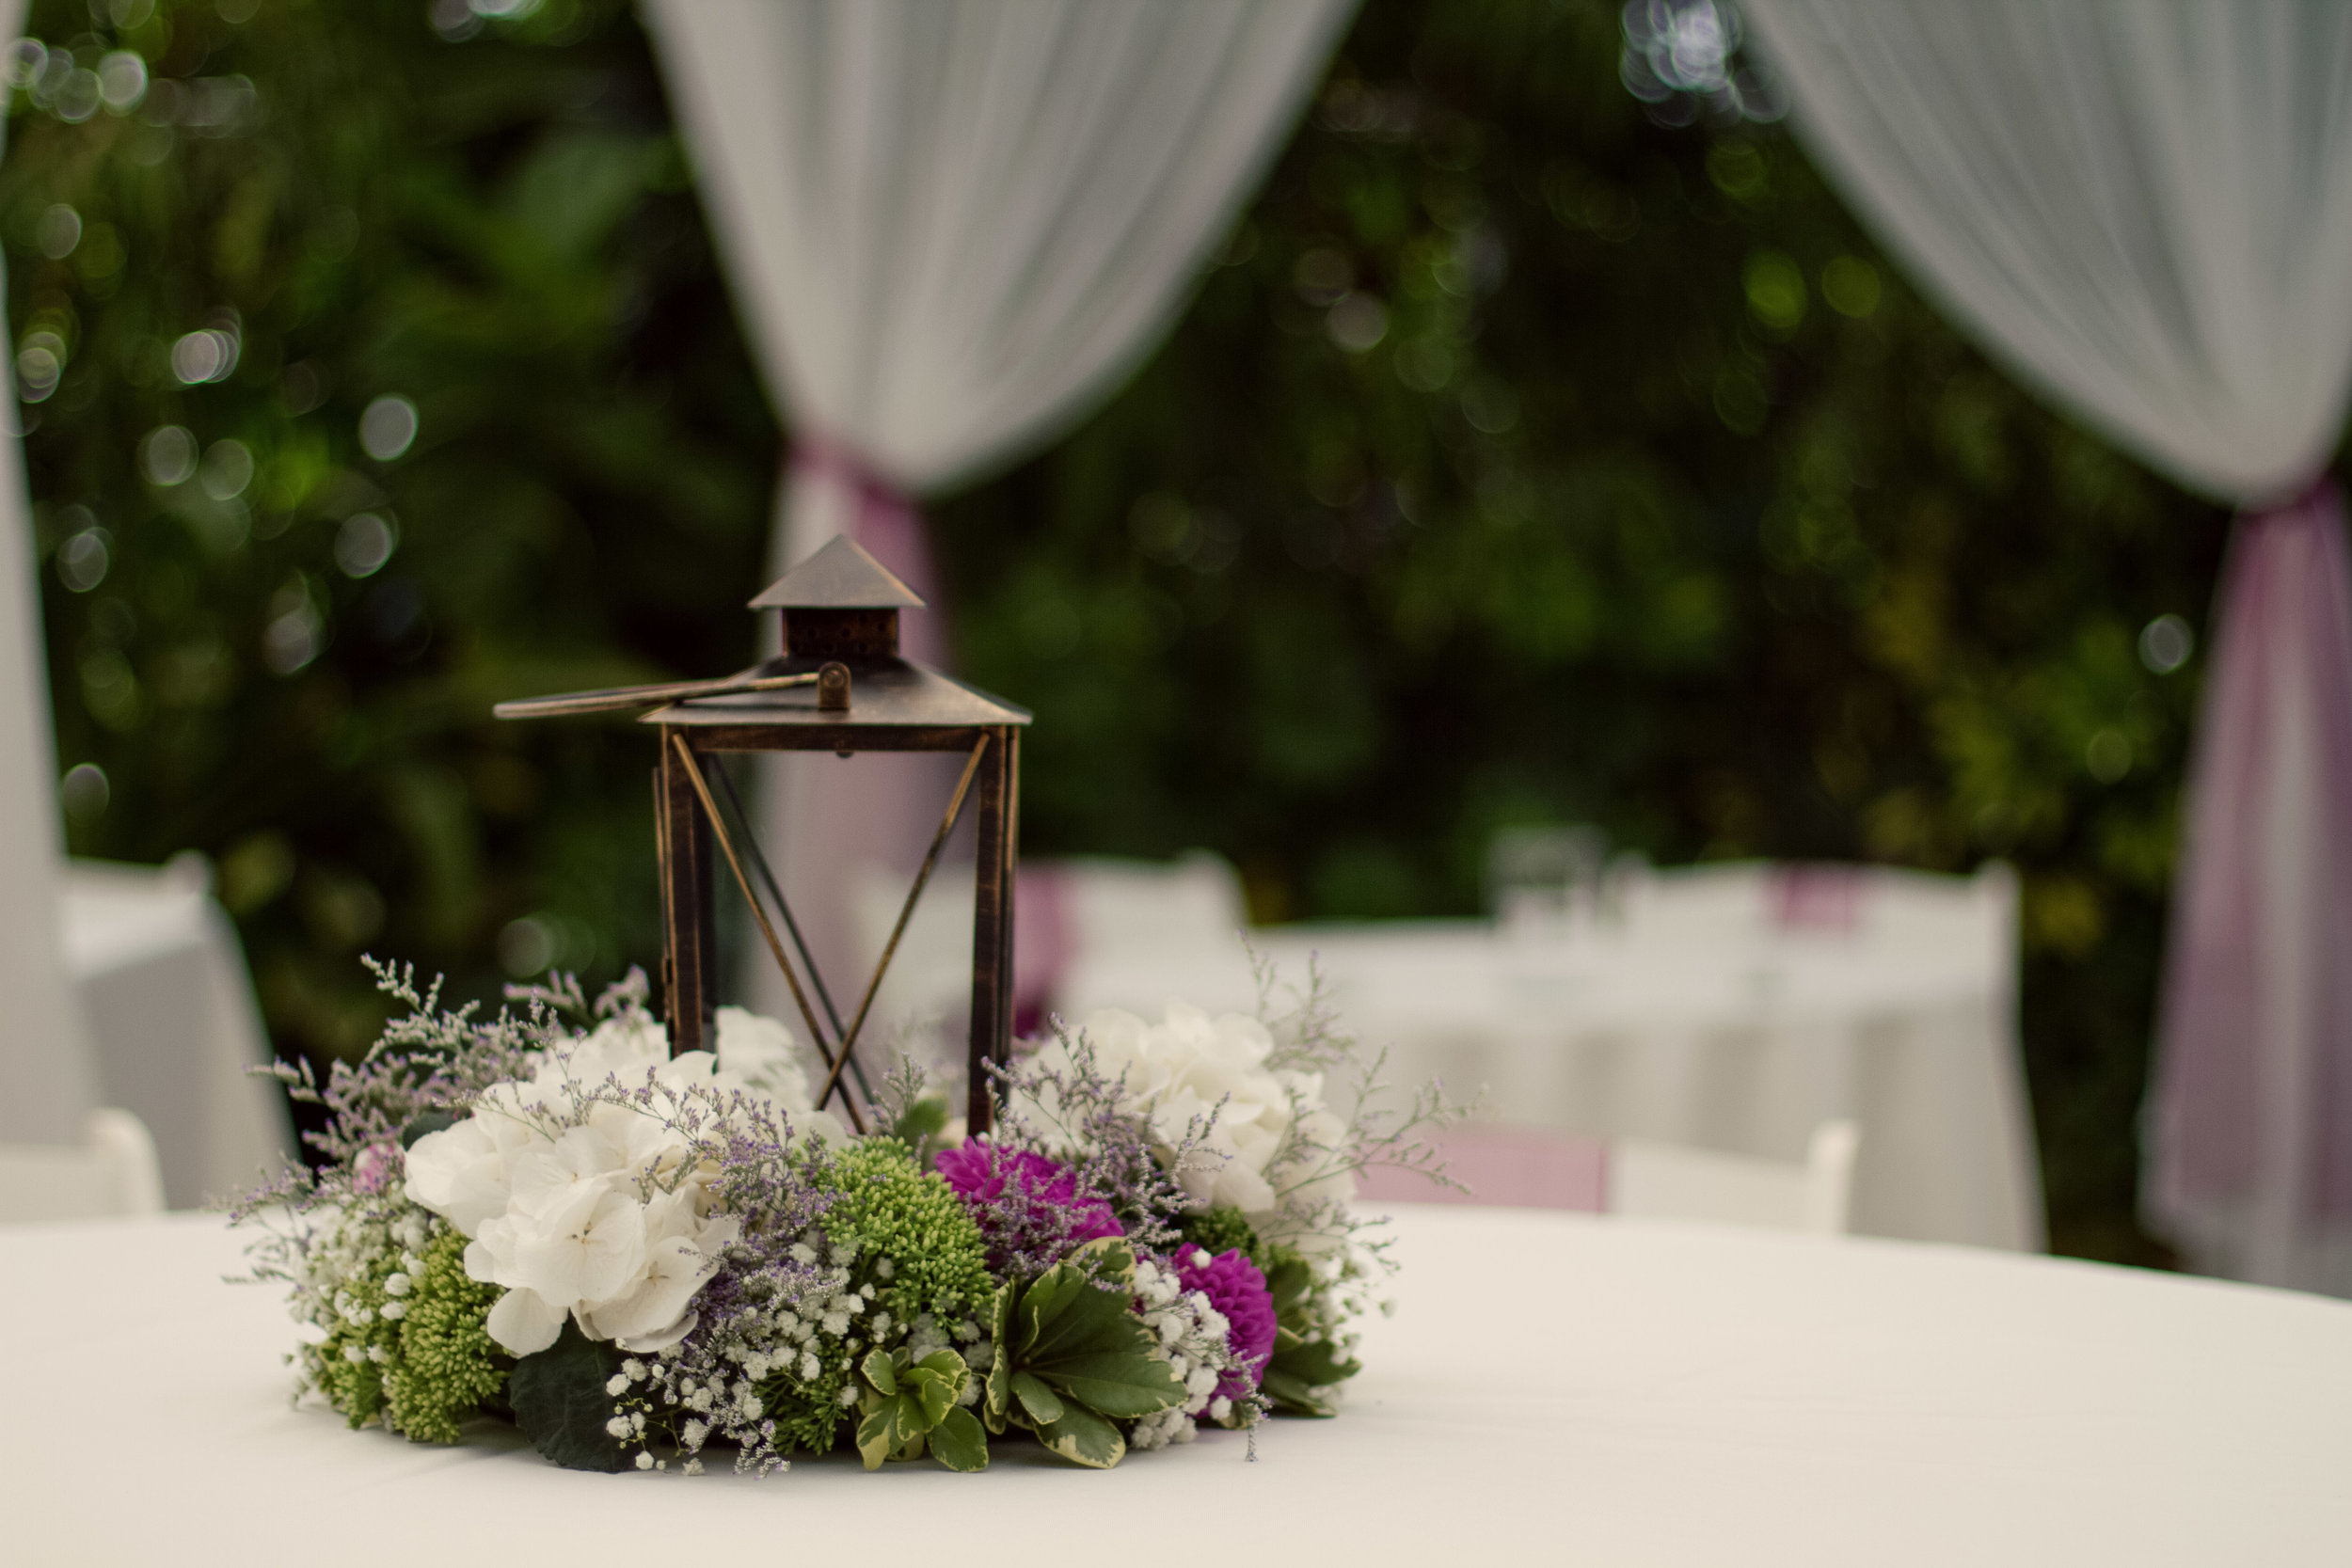 Wedding centrepiece by Floral Design by Lili, Vancouver wedding florist